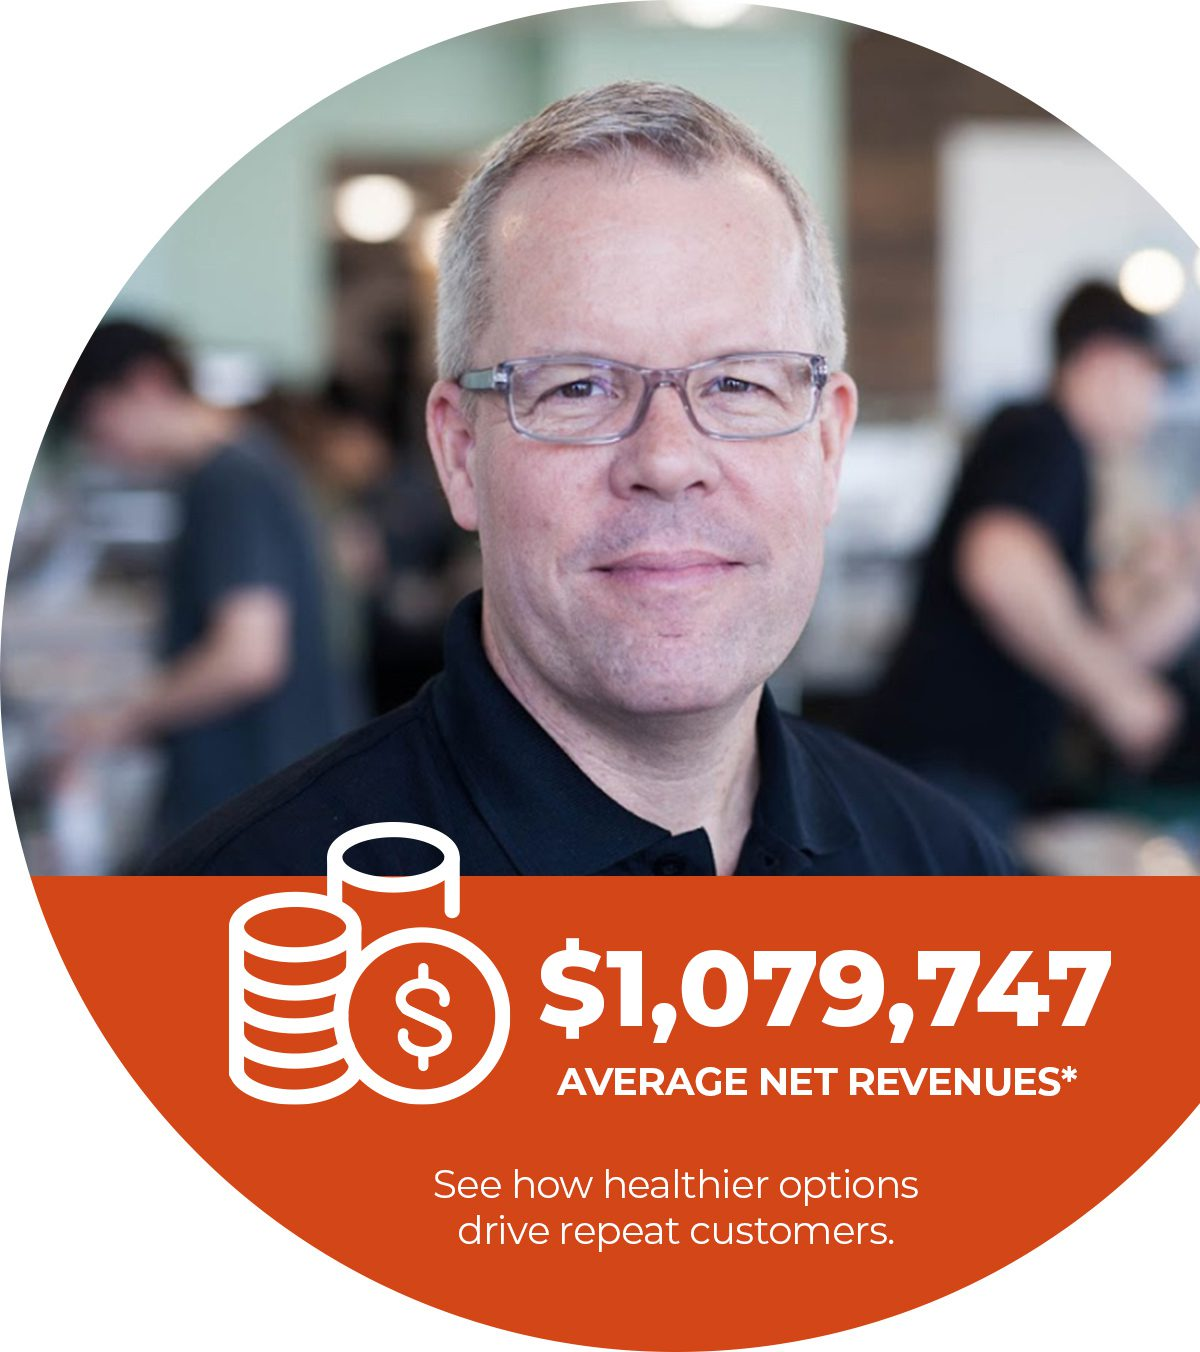 $1,079,747 Average Net Revenues * - See how healthier options drive repeat customers.